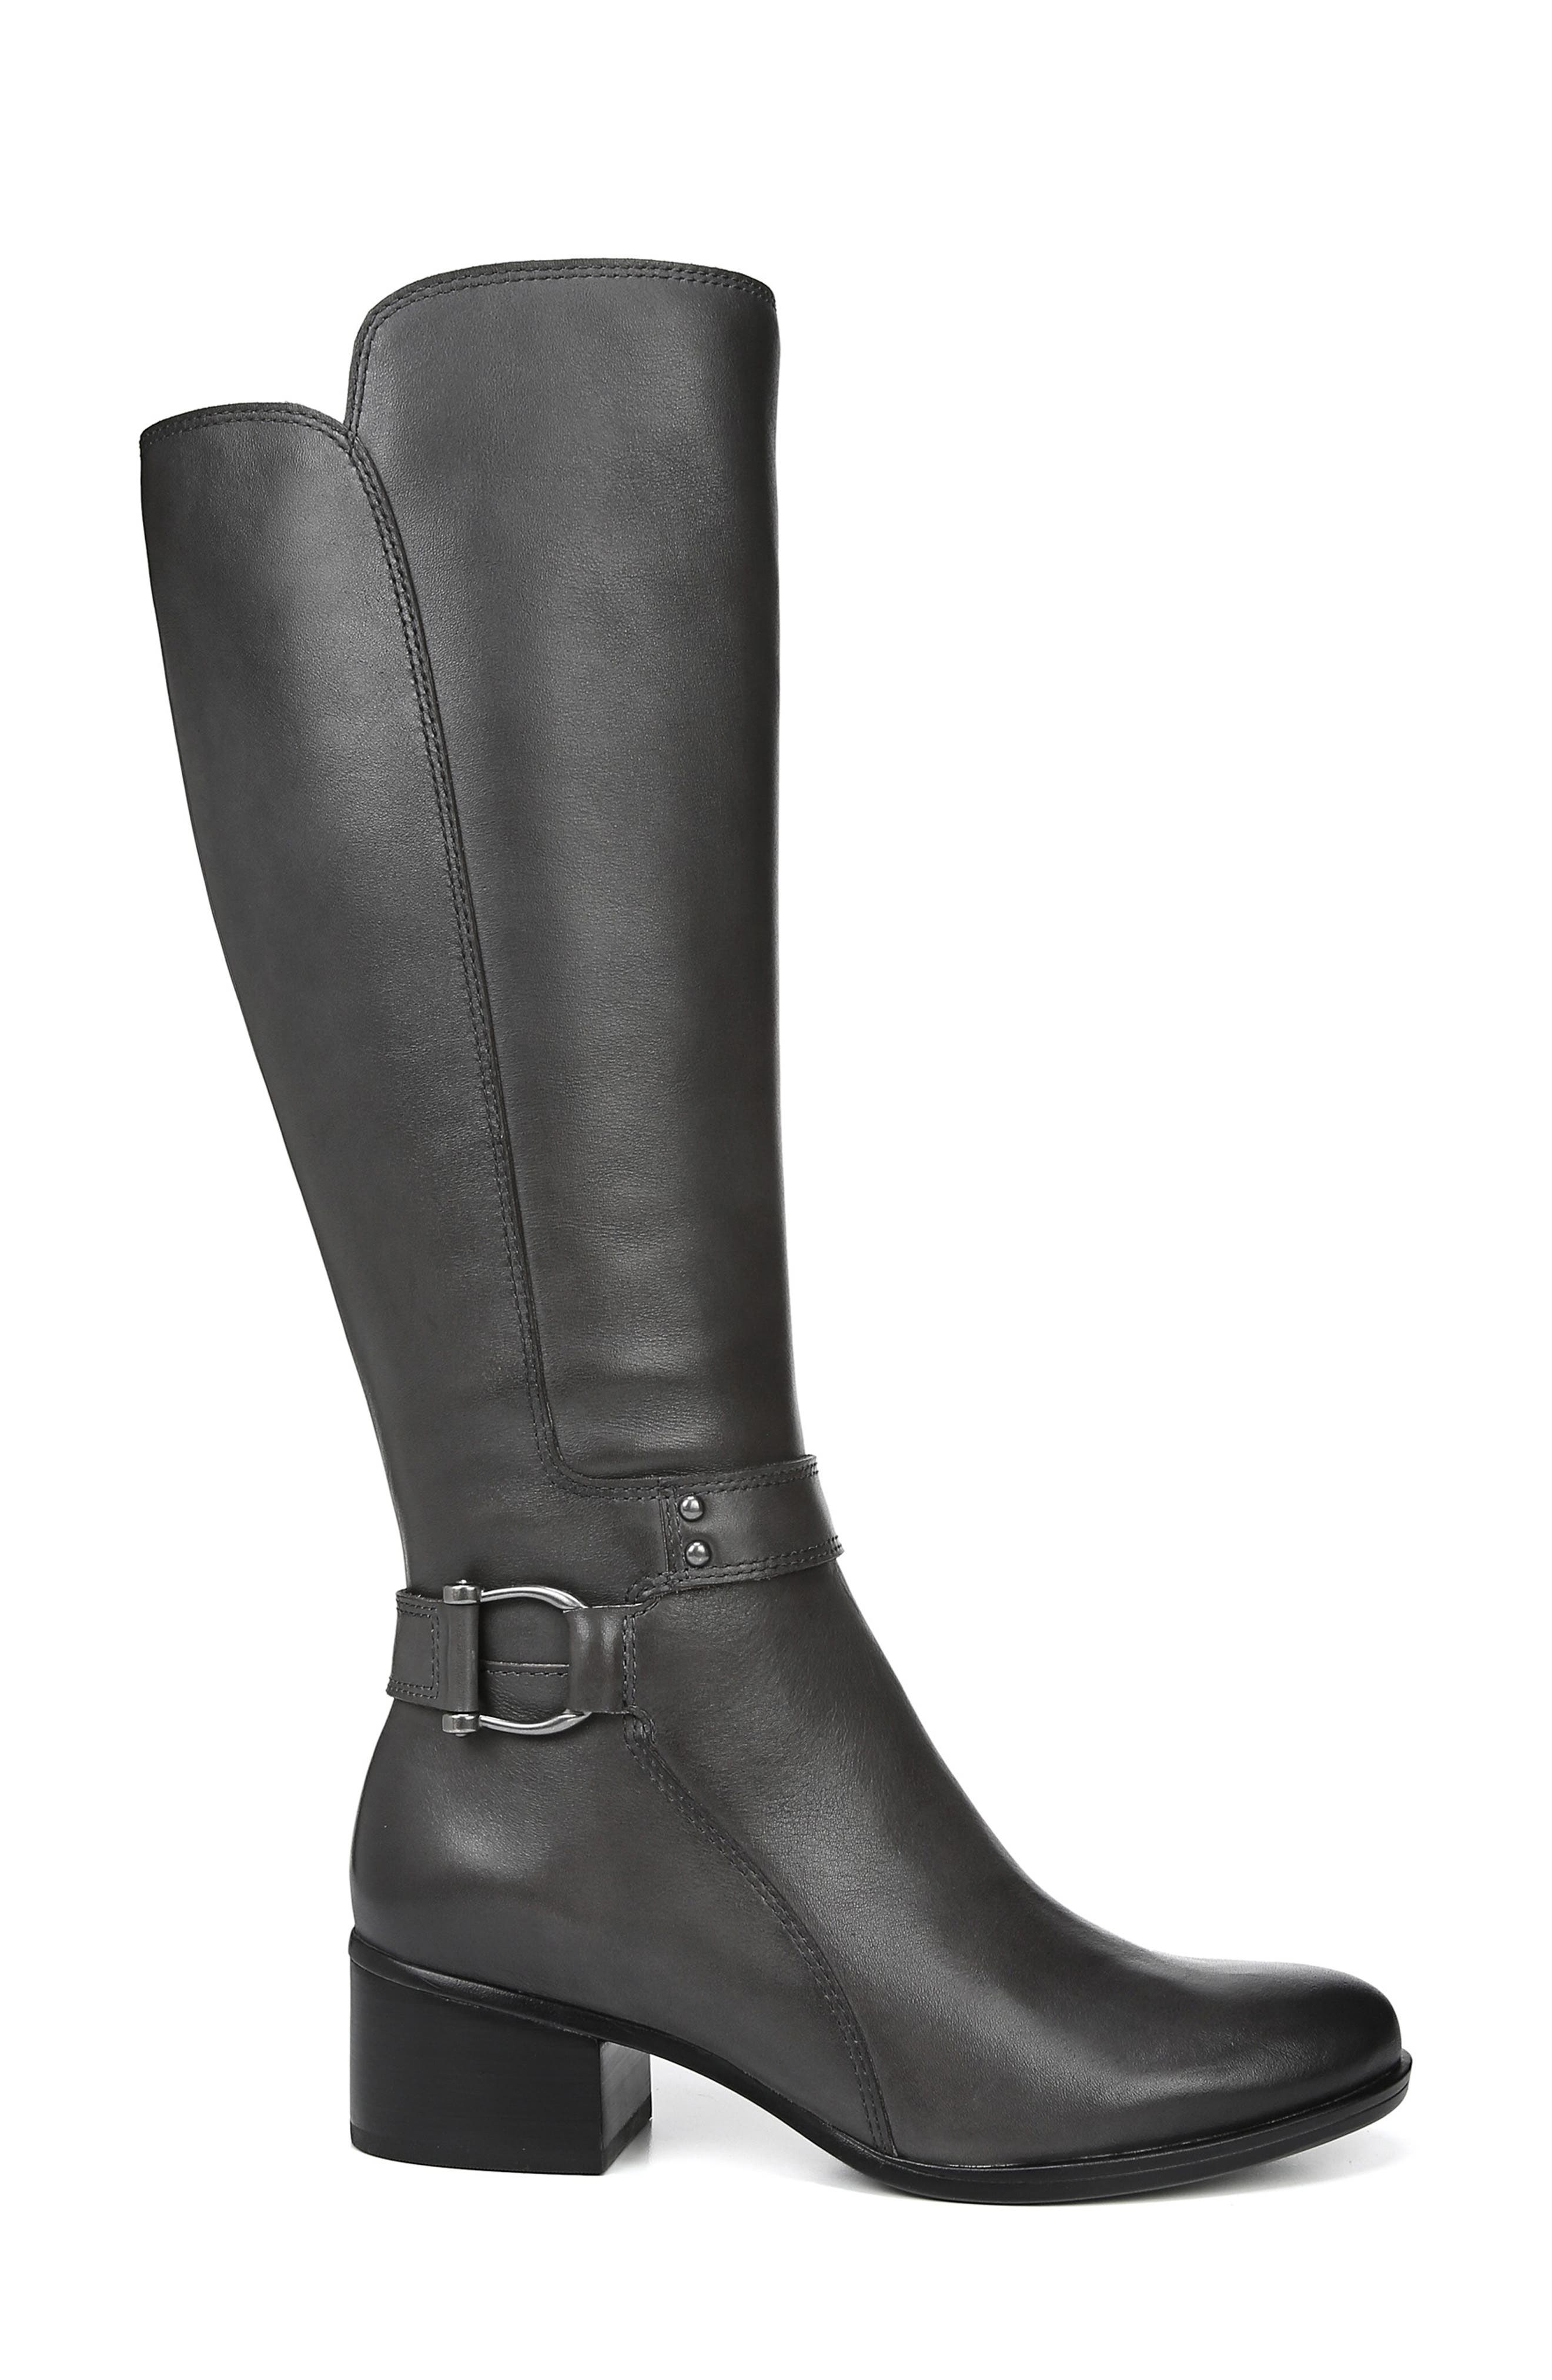 Dane Knee High Riding Boot,                             Alternate thumbnail 3, color,                             GREY LEATHER